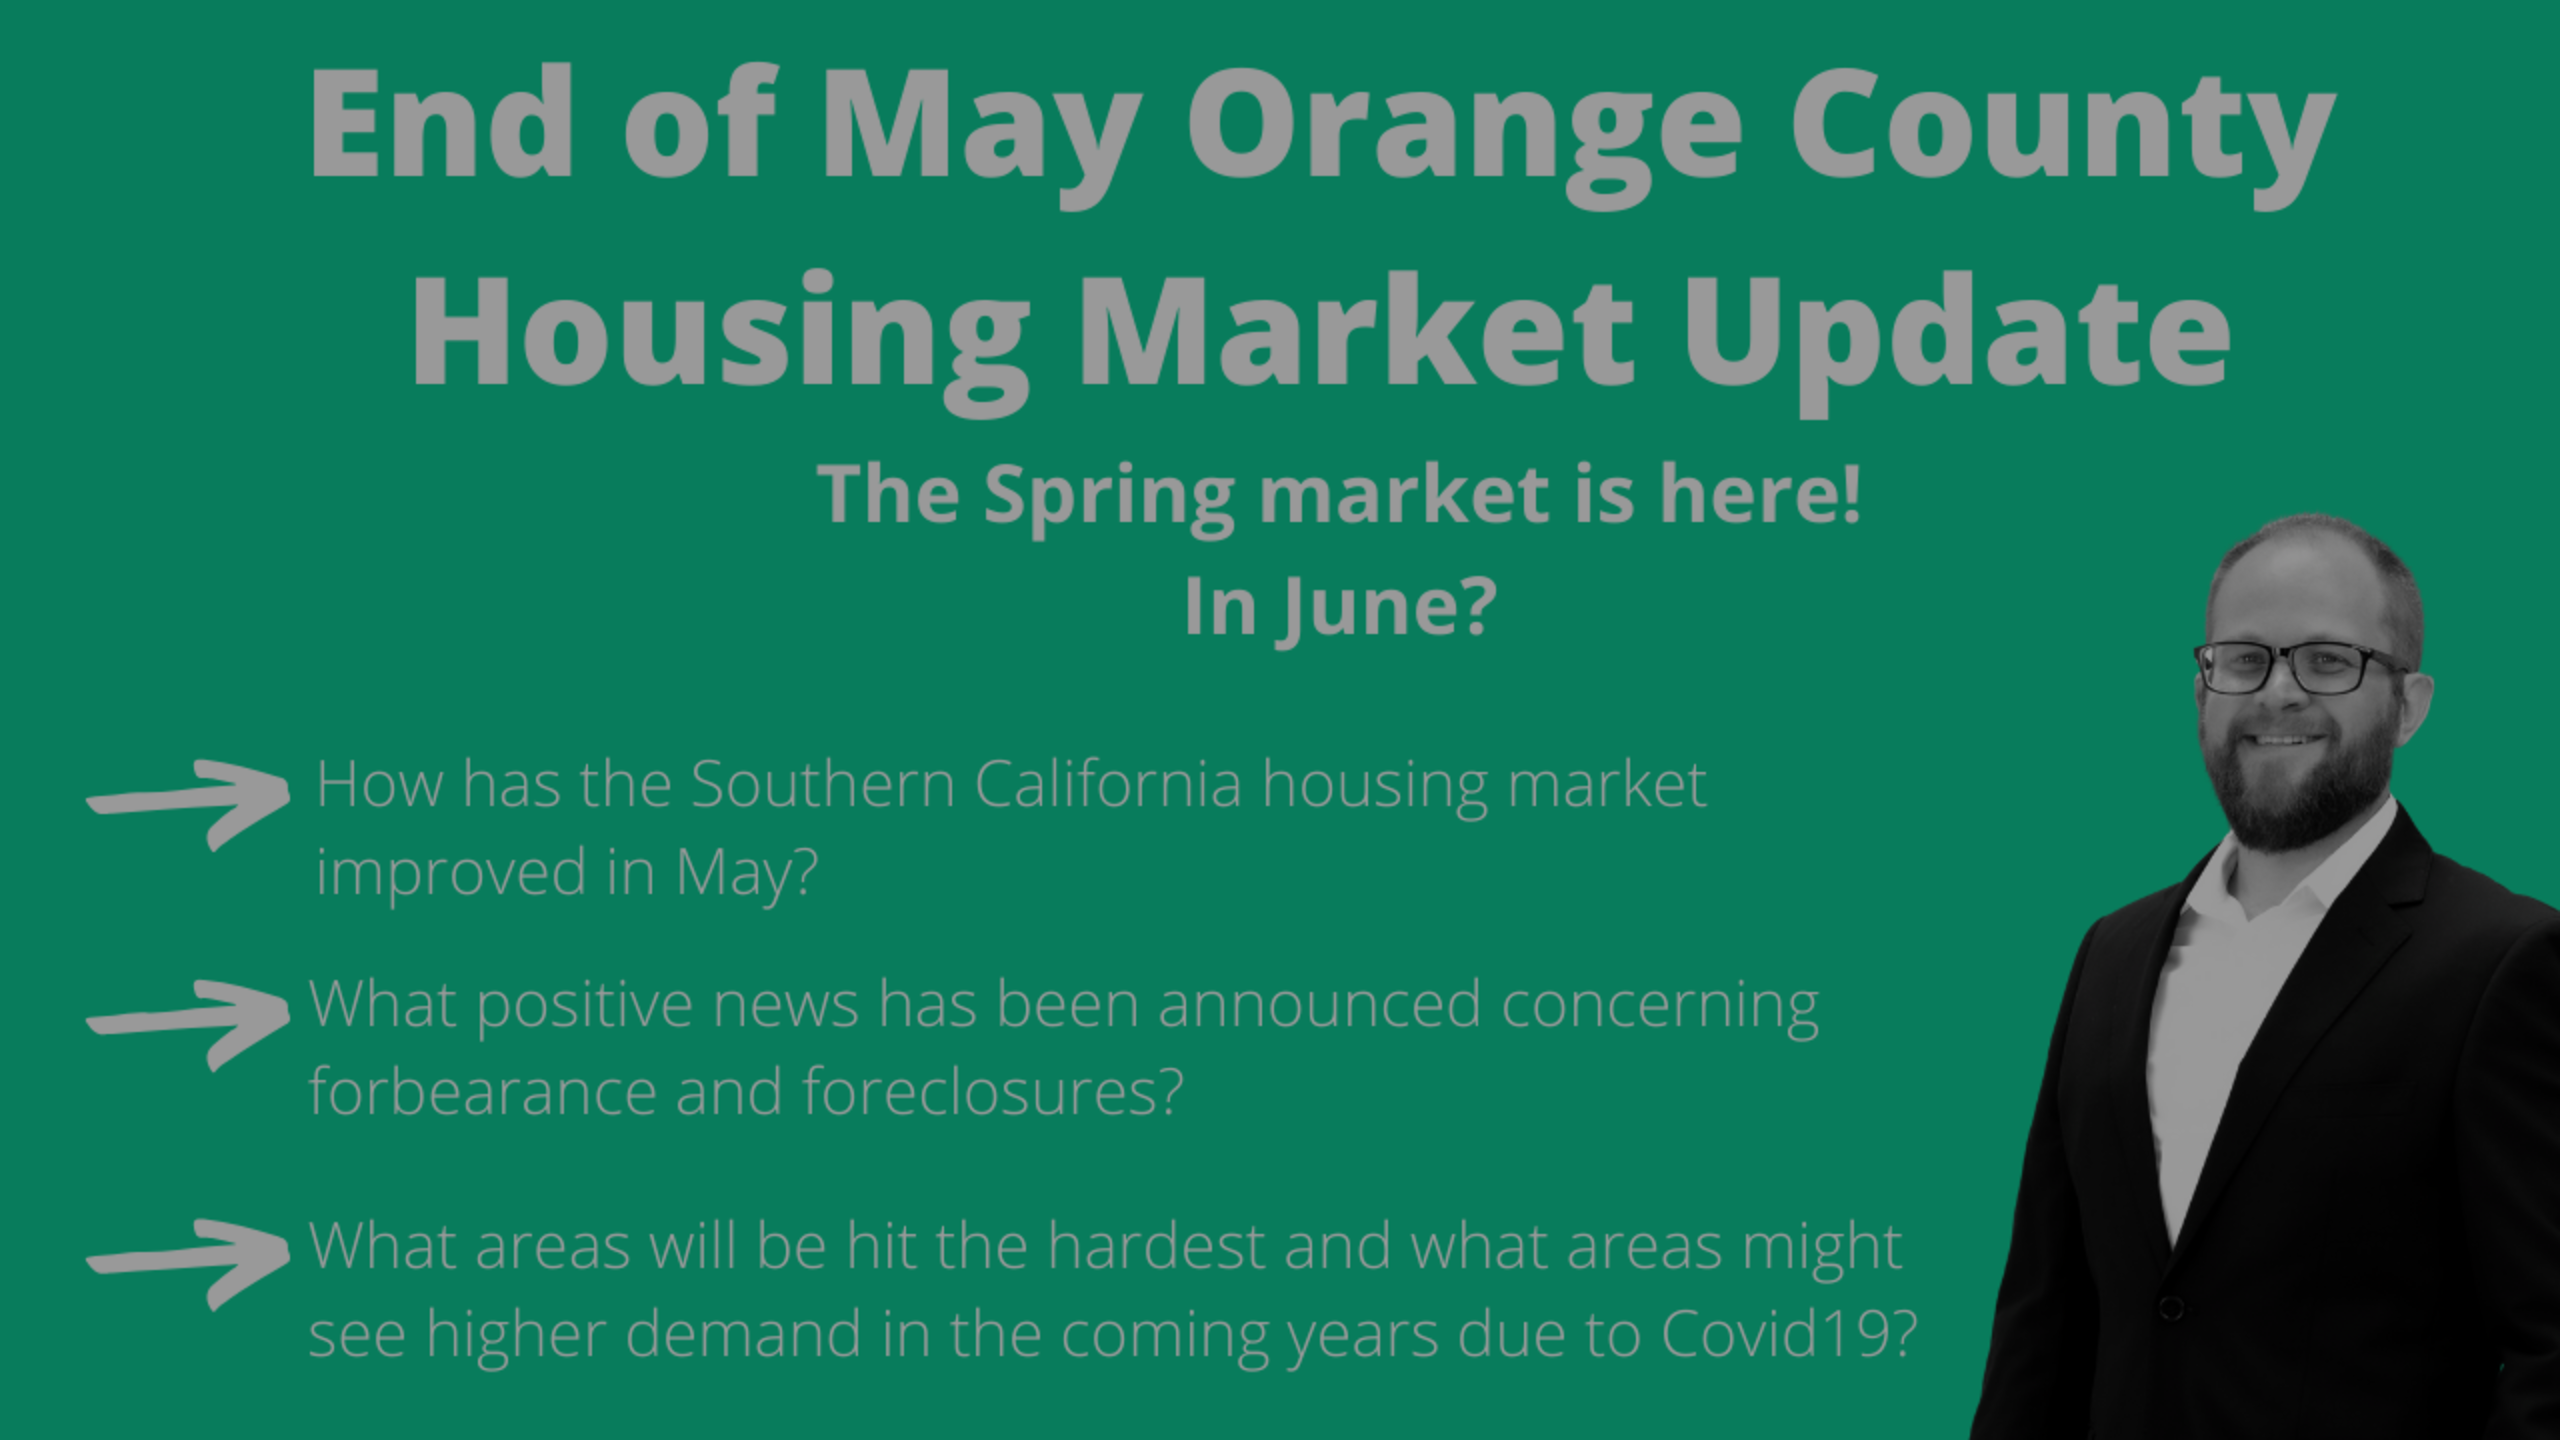 End of May Orange County Housing Market Update